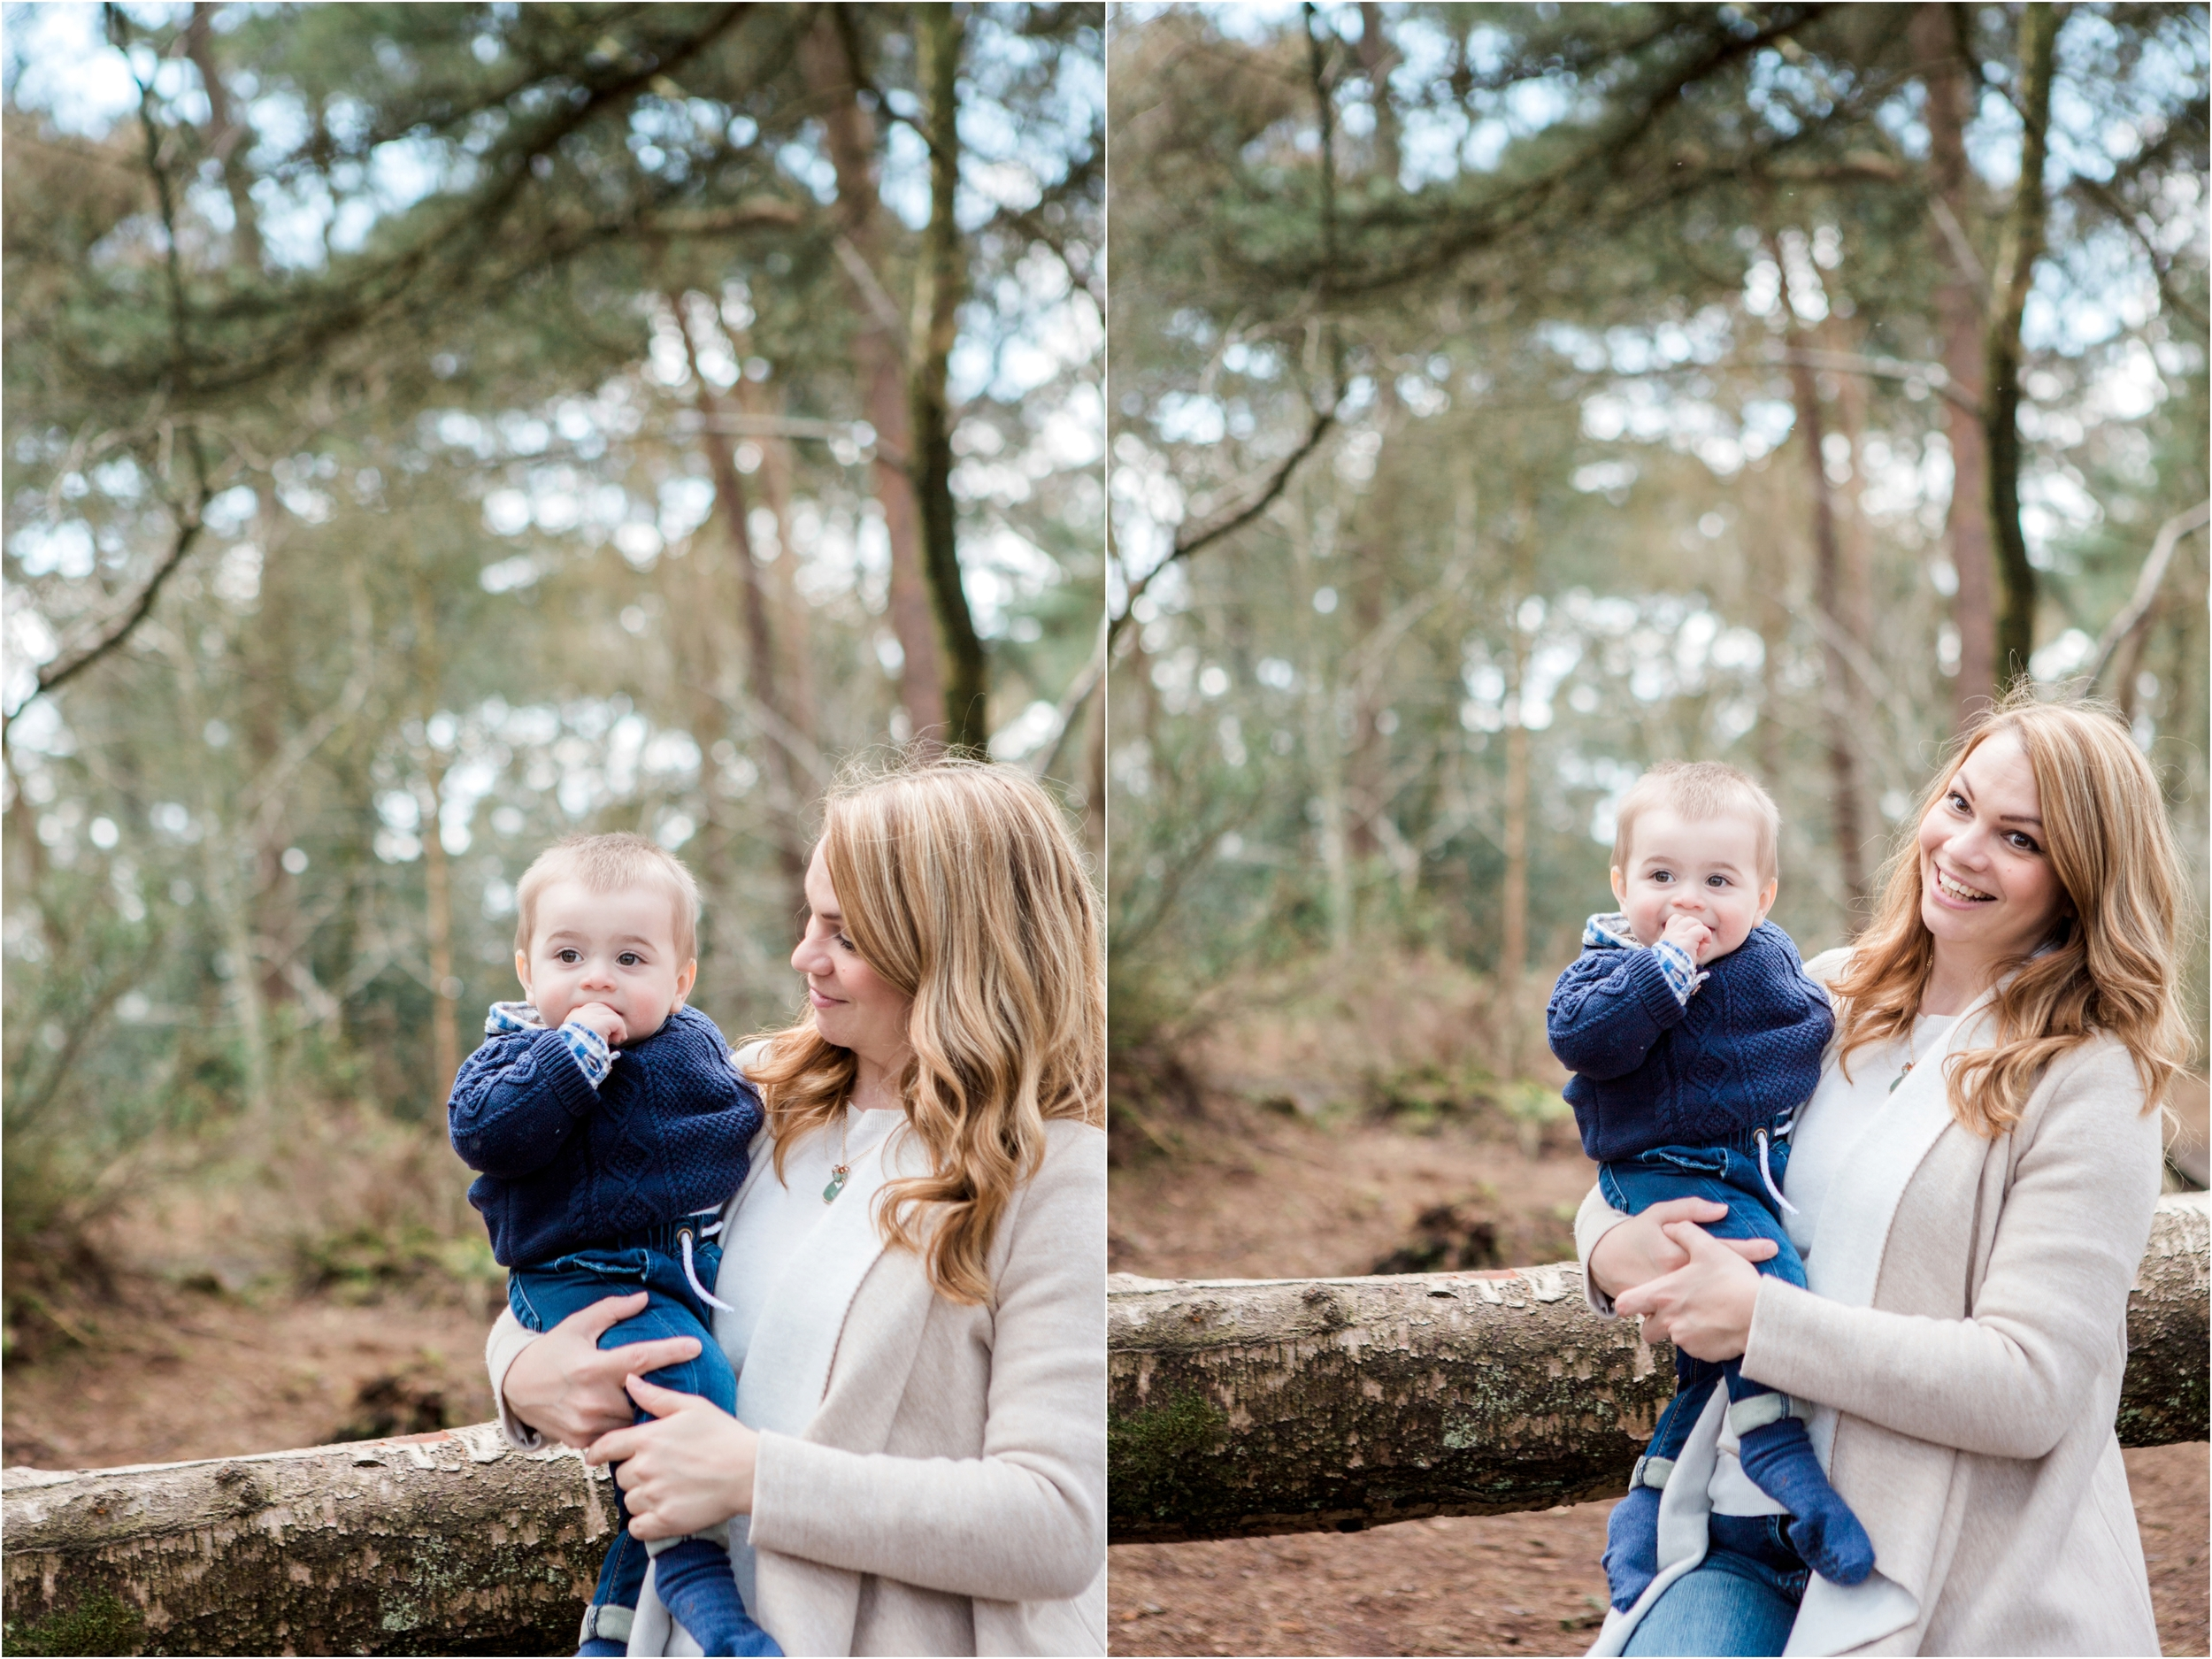 Sophie Evans Photography. Warwickshire Family Photographer, Lifestyle family shoot. Lickey Hills Family Shoot (16).jpg